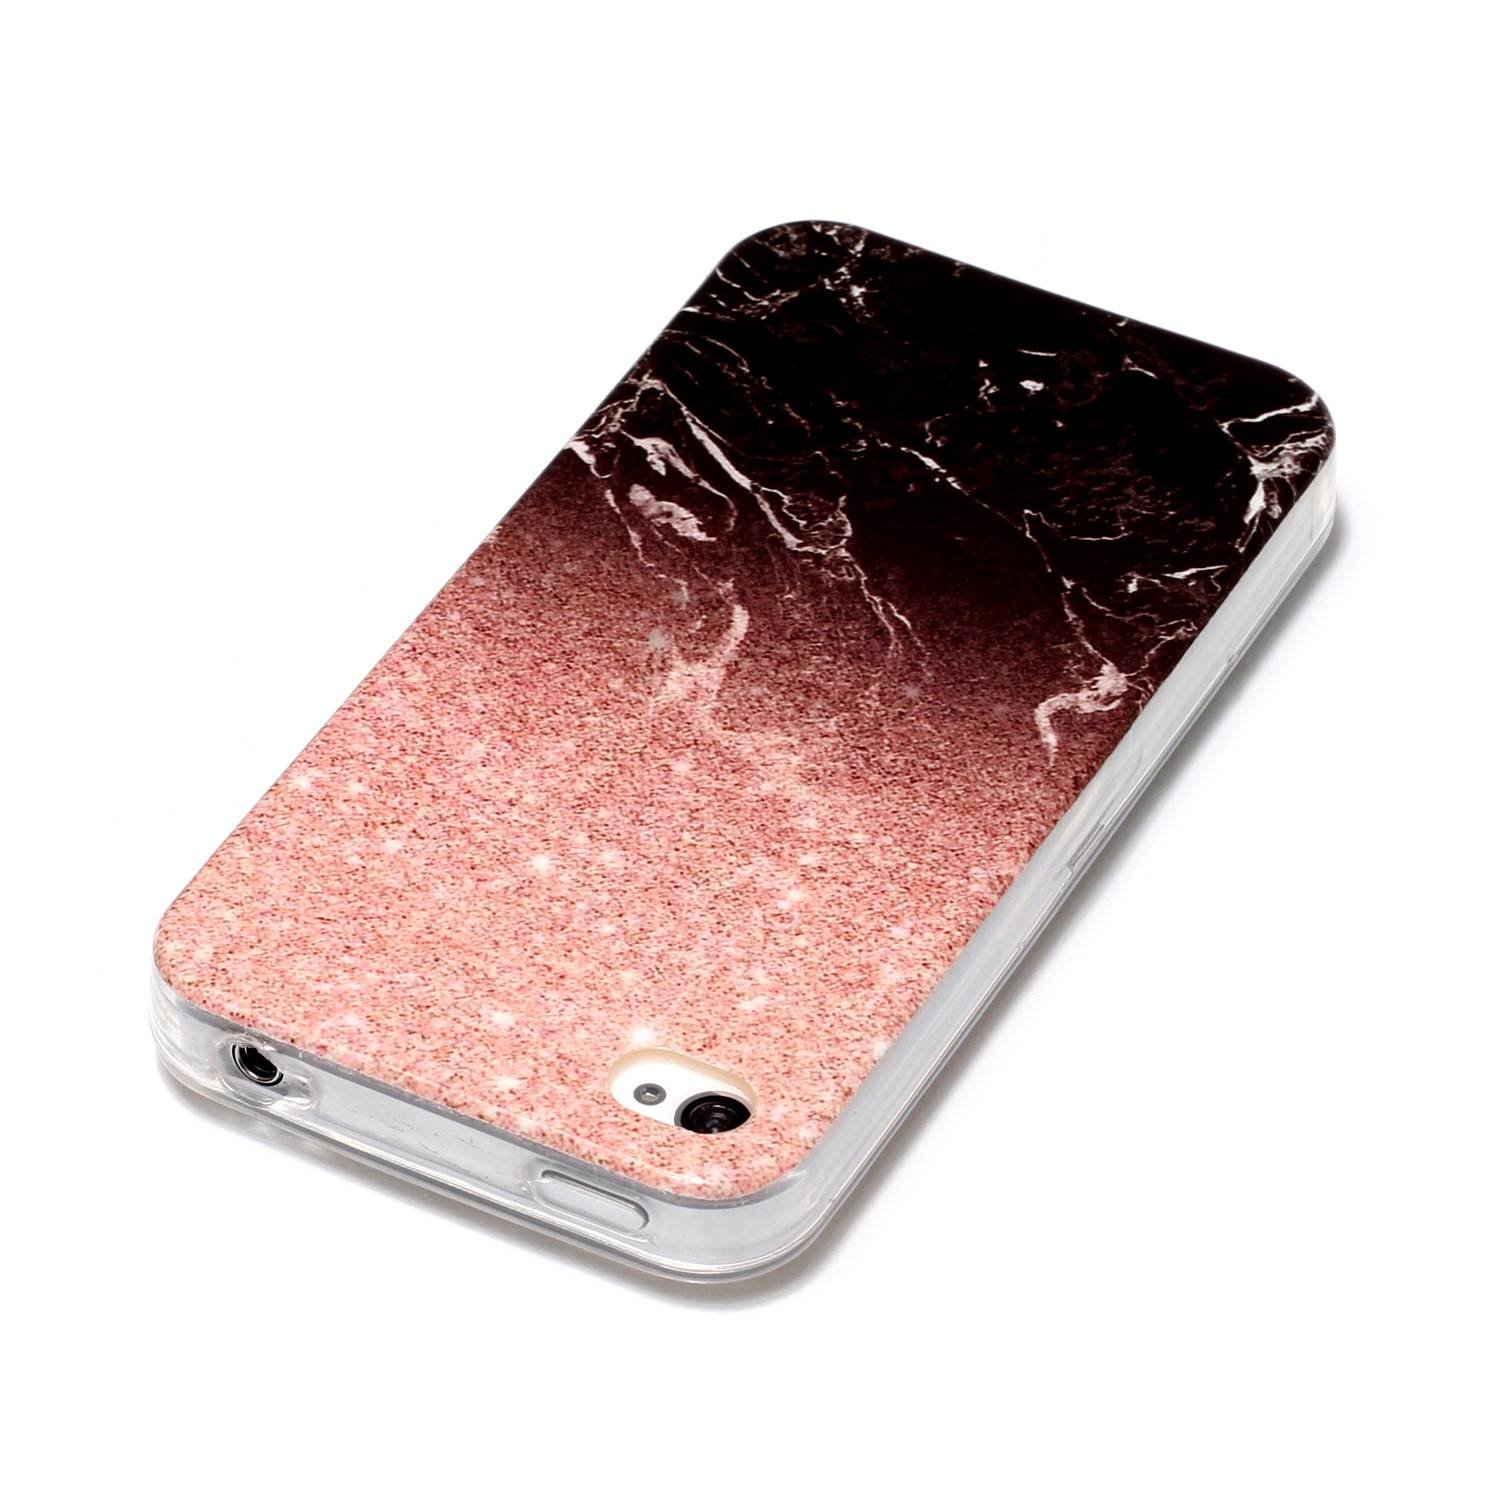 for iPhone 4//iPhone 4S Marble Case with Screen Protector,OYIME Creative Glossy Brick red /& Black Marble Pattern Design Protective Bumper Soft Silicone Slim Thin Rubber Luxury Shockproof Cover